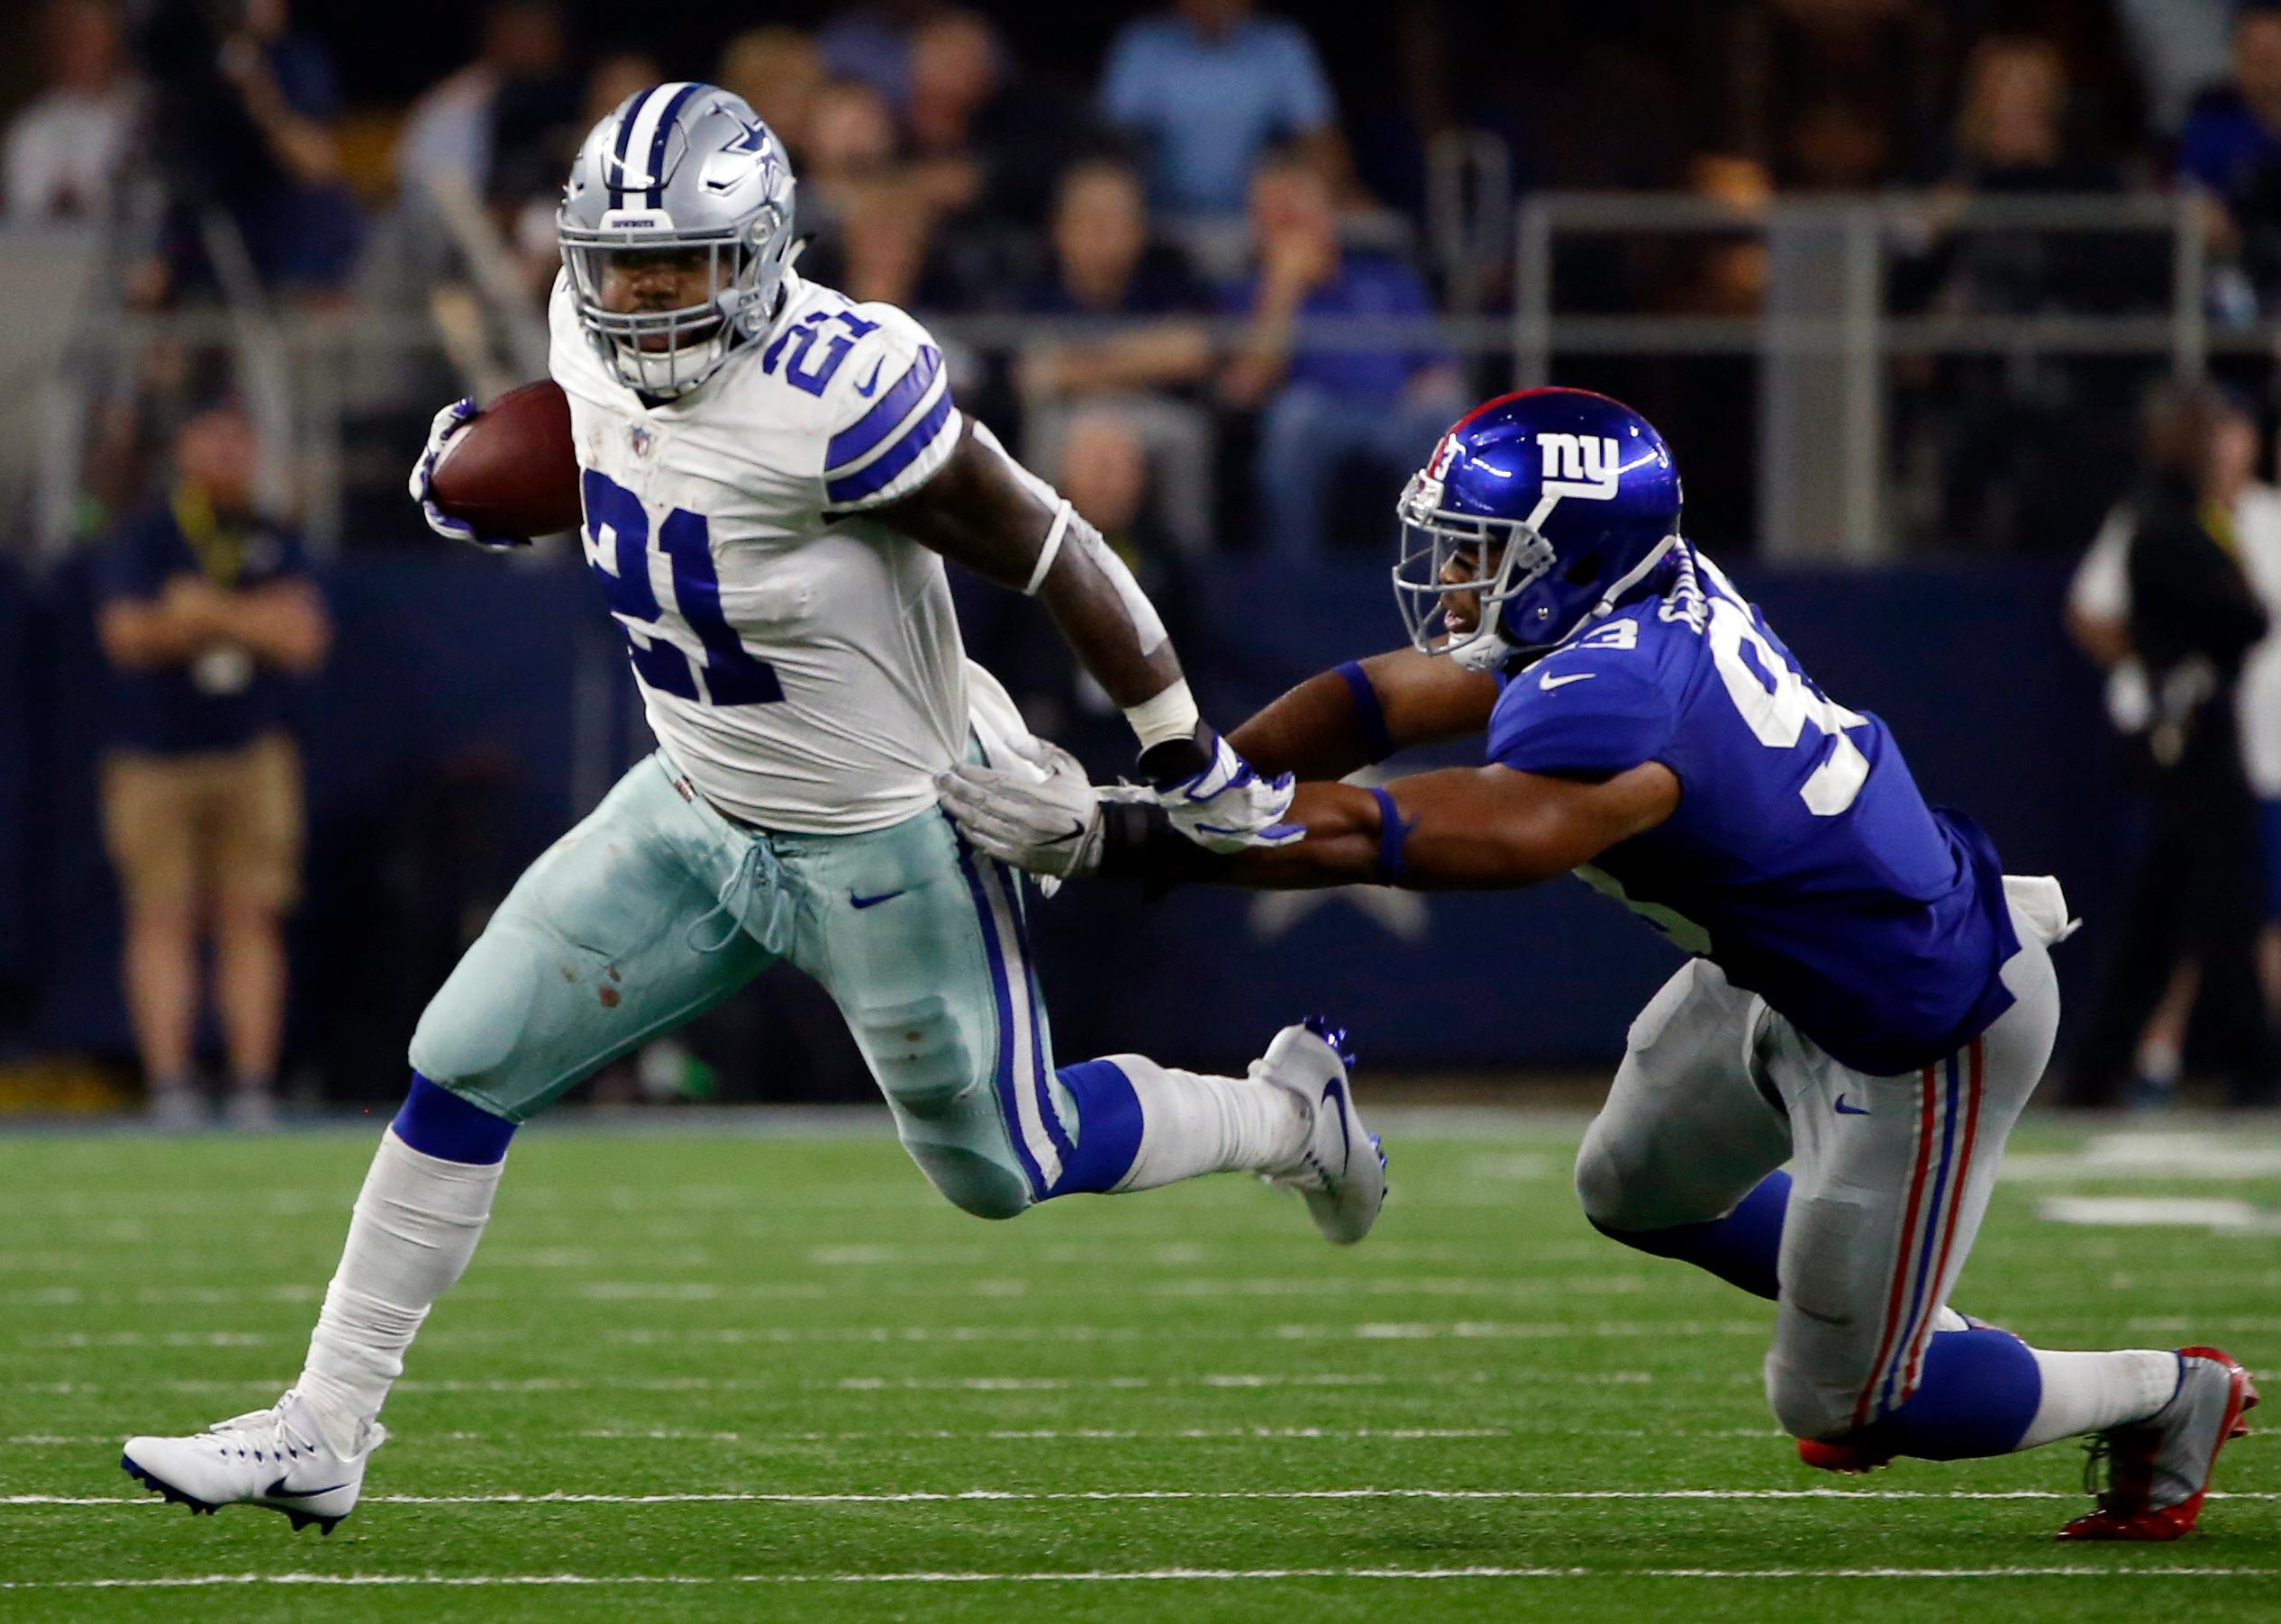 ... Giants Jersey Womens Limited Nike NFL 2016 Salute Dallas Cowboys  running back Ezekiel Elliott (21) escapes a tackle attempt by New York  Jasons 2016 B.J. ... 28272573a